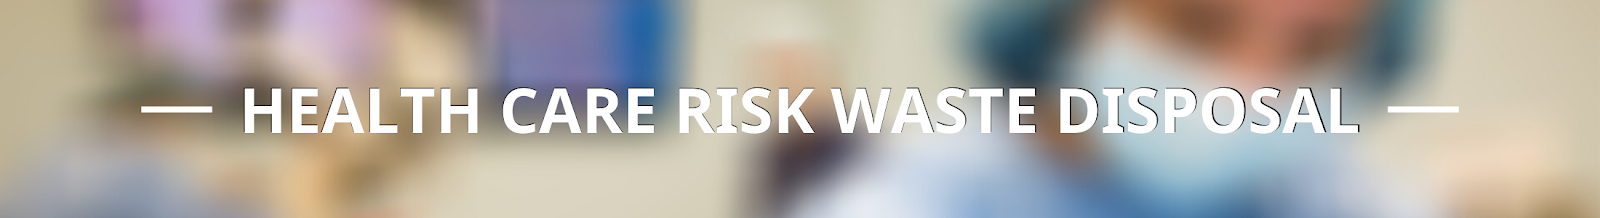 health care risk waste disposal